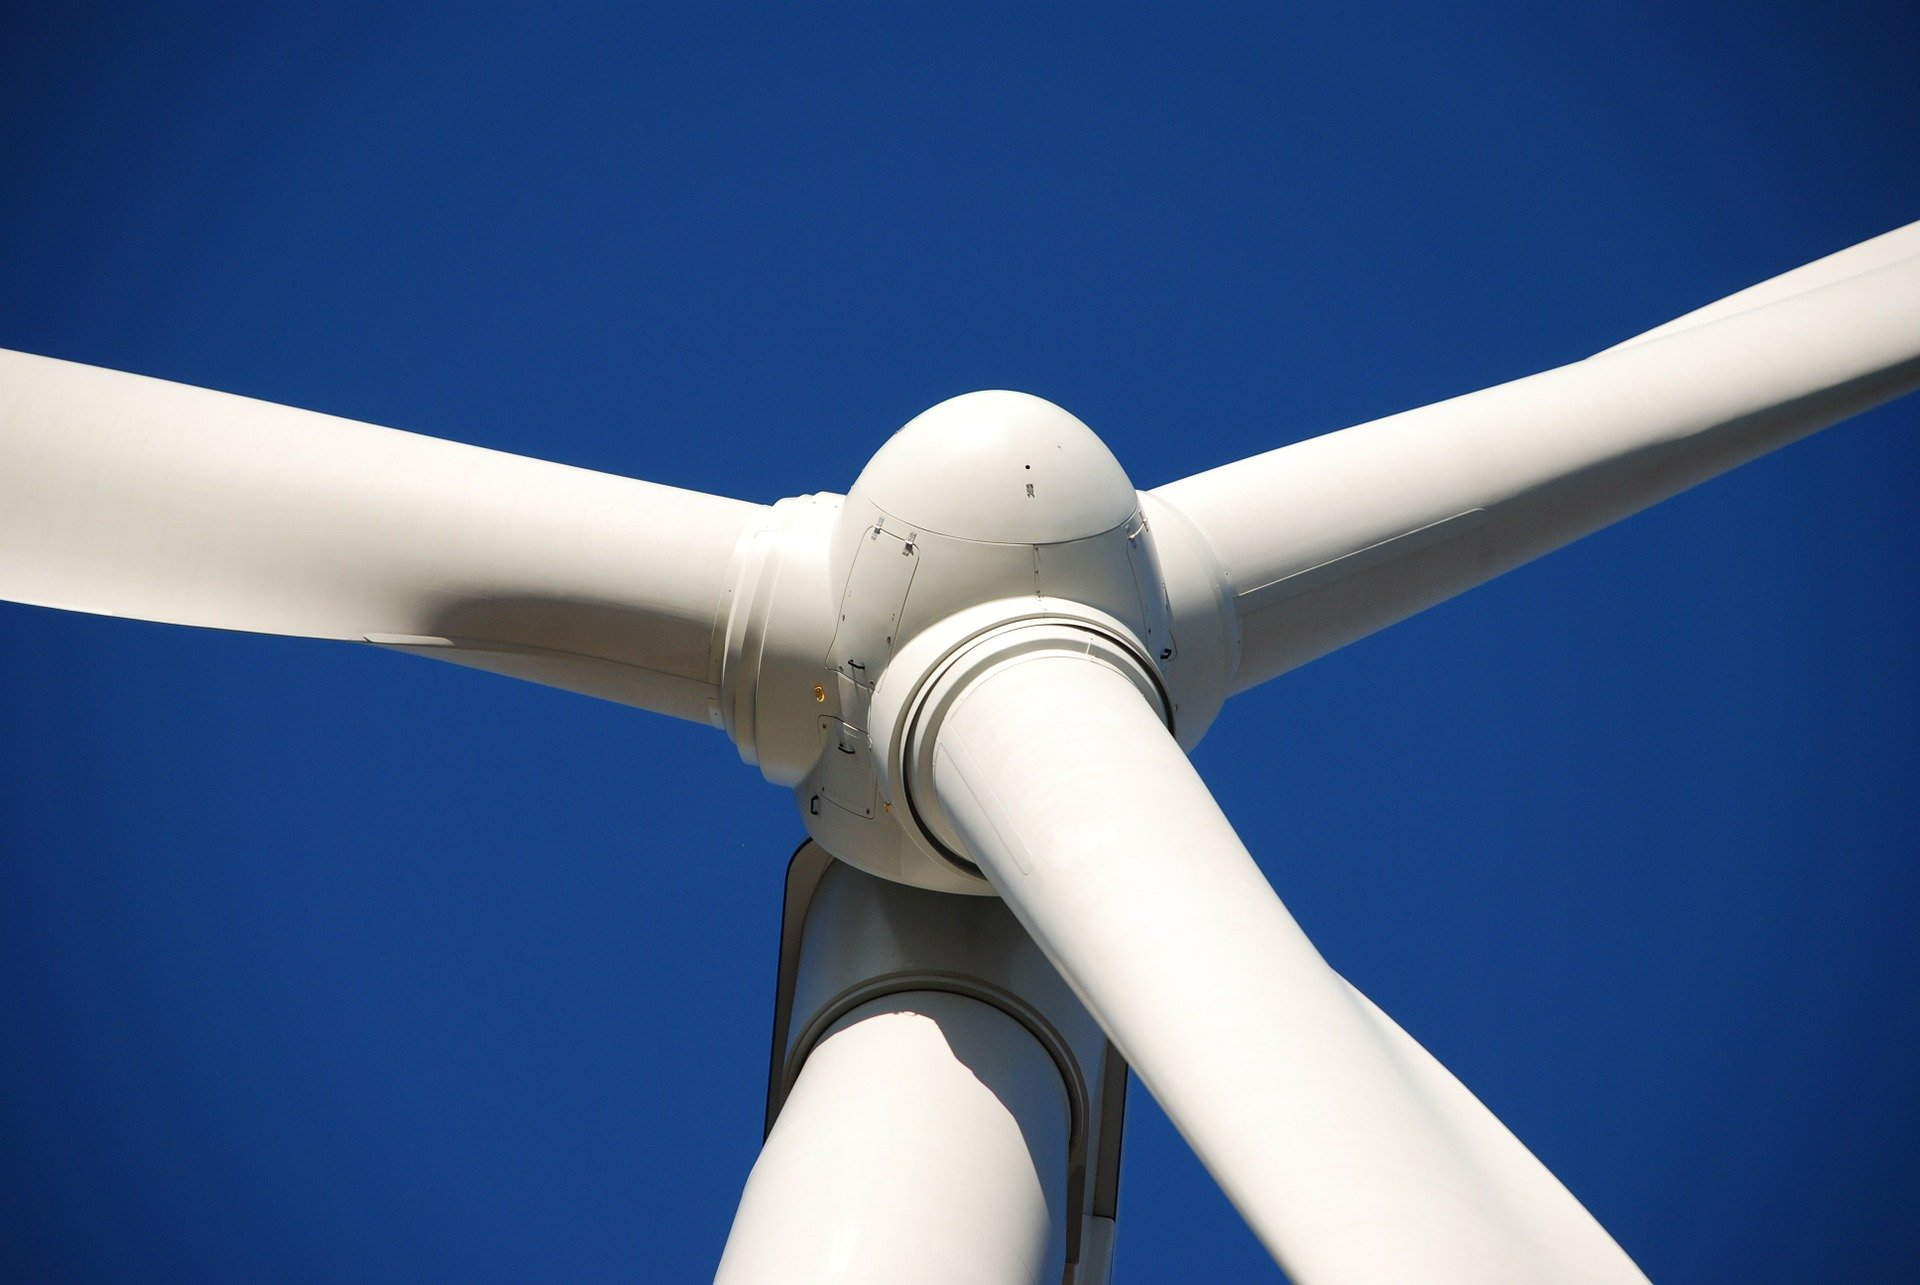 The European Union already has more than 200,000 megawatts of installed wind energy